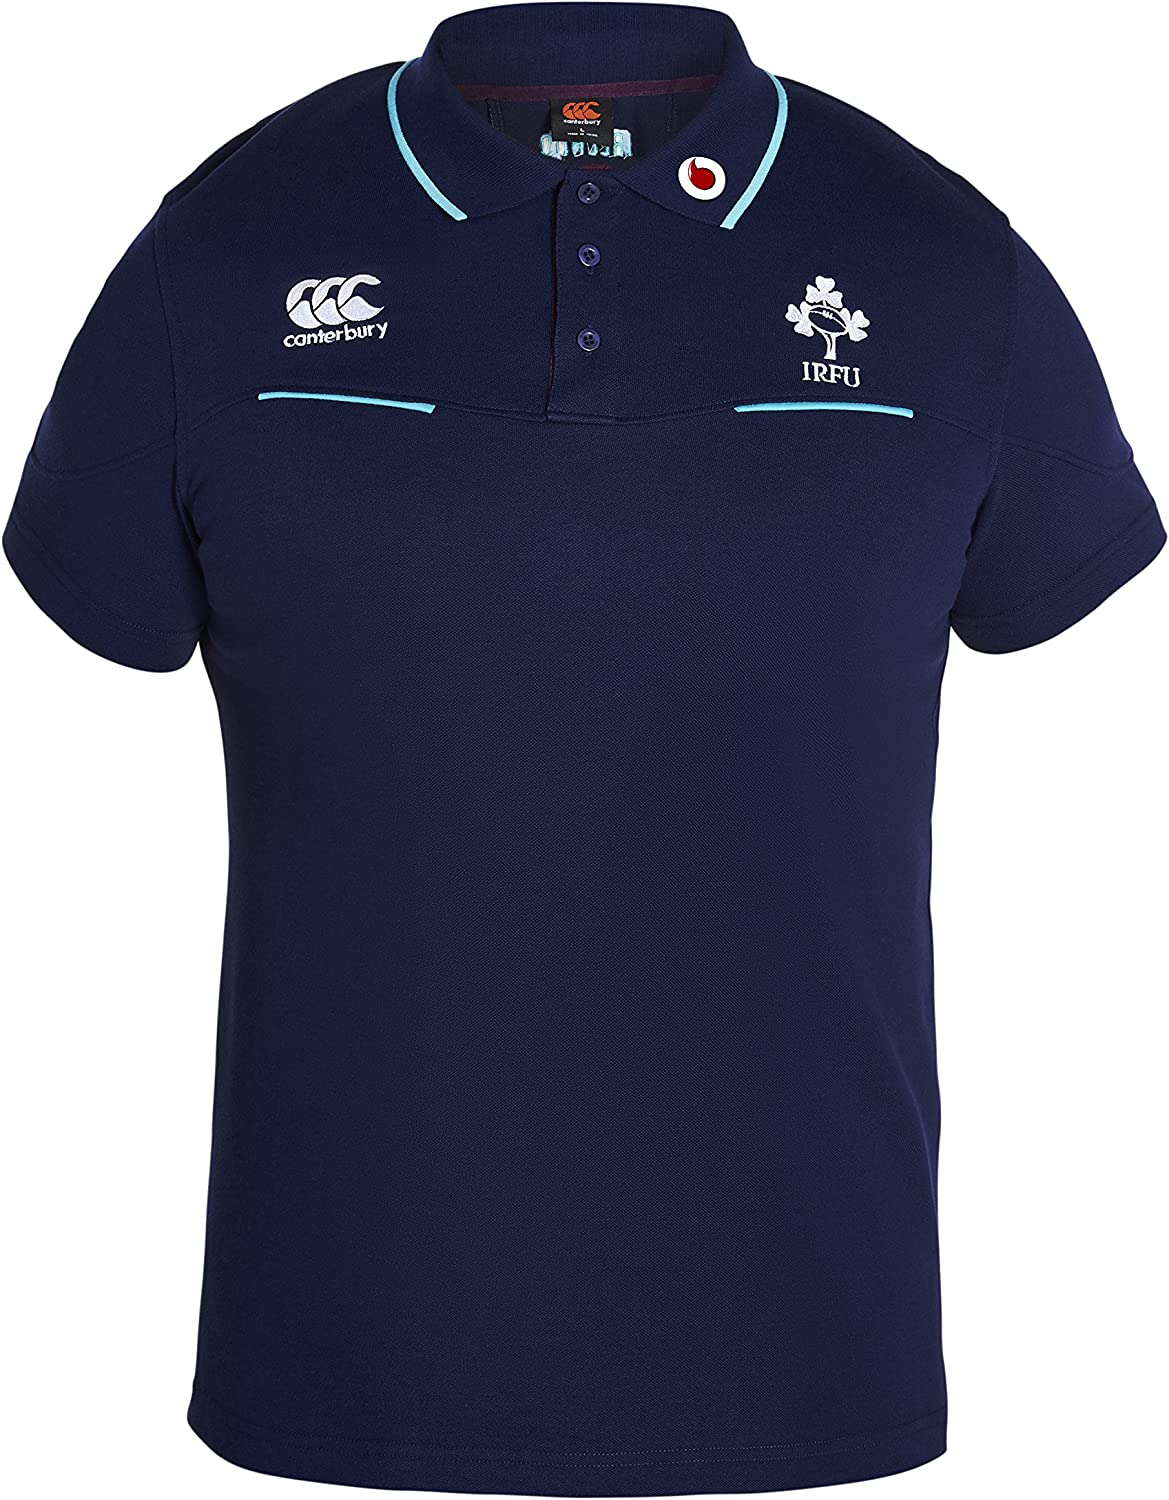 Peacot Canterbury 2016-2017 Ireland Rugby Cotton Training Polo Shirt